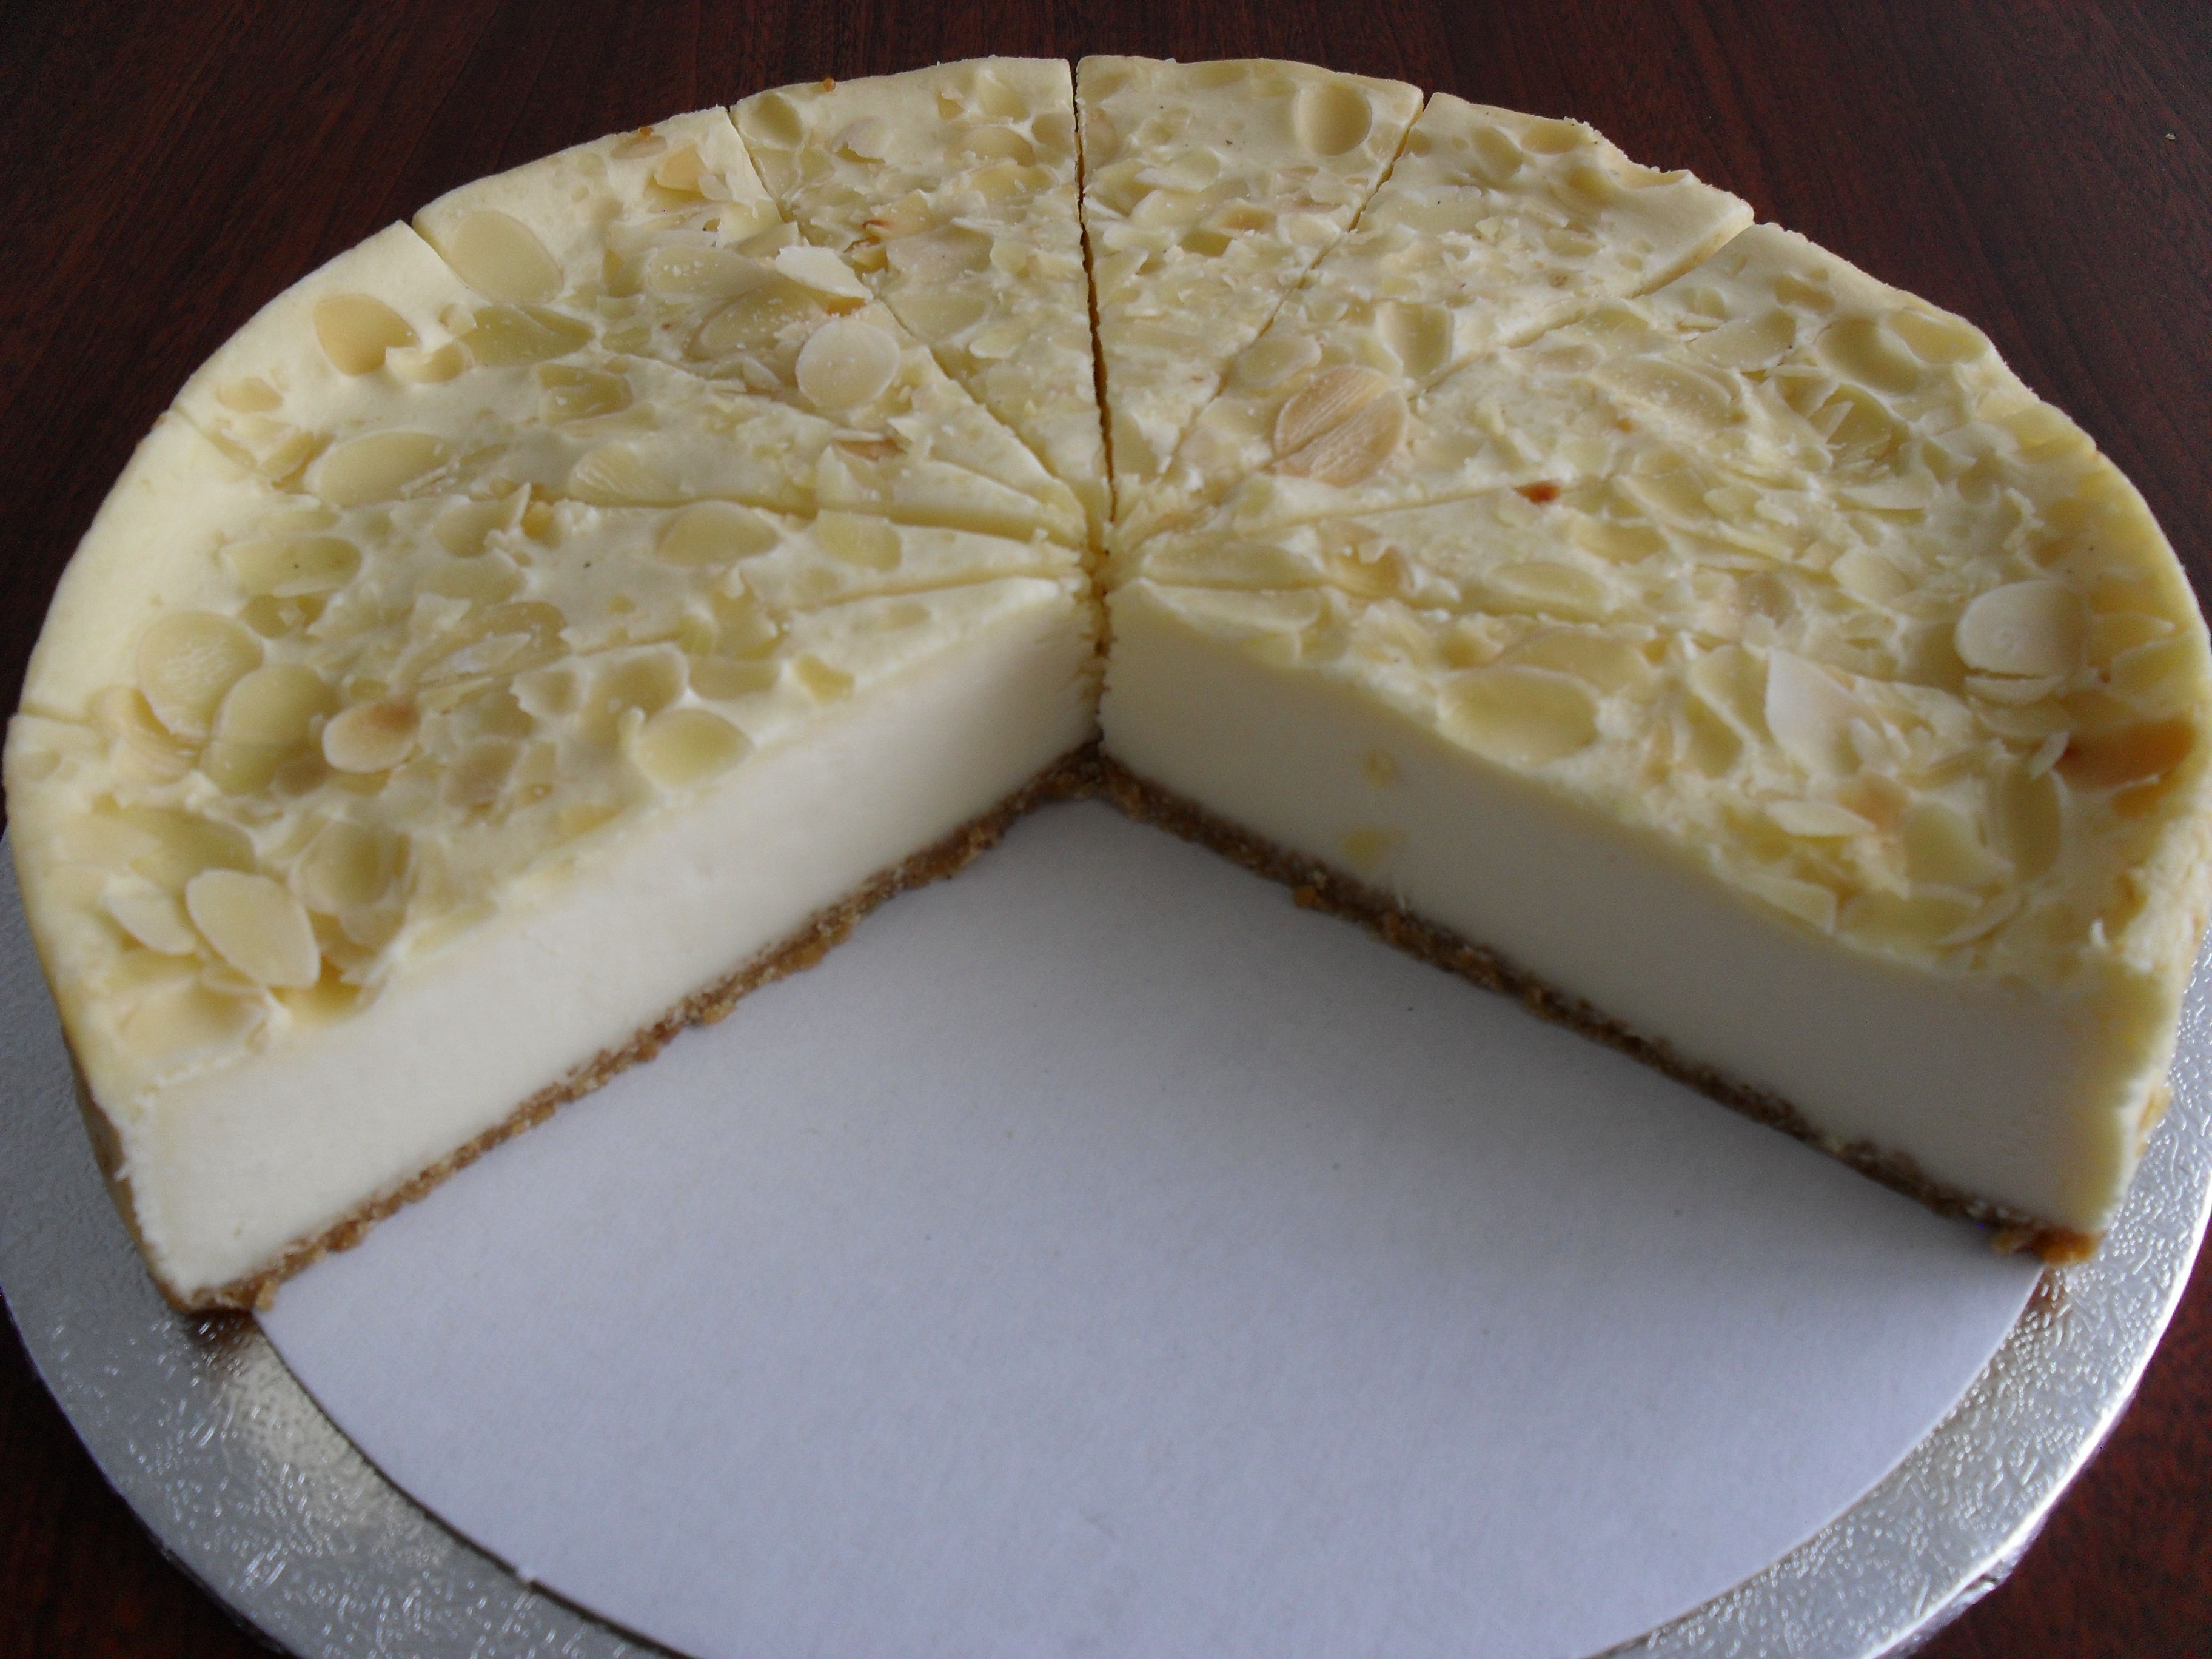 Amaretto Cheese Banquet Cake